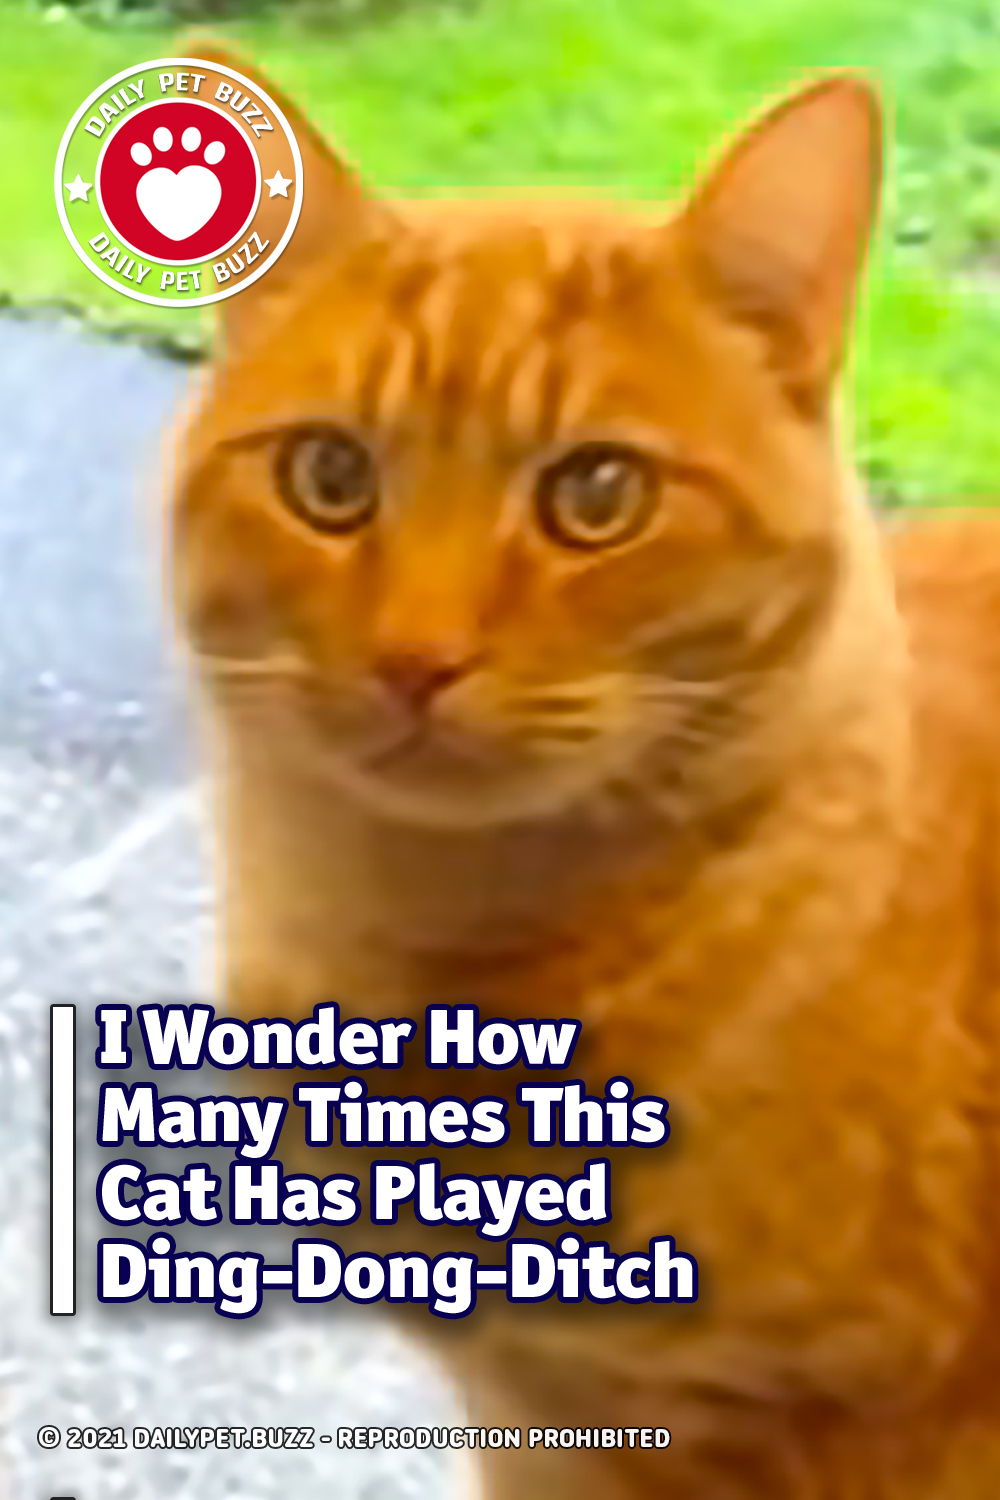 I Wonder How Many Times This Cat Has Played Ding-Dong-Ditch